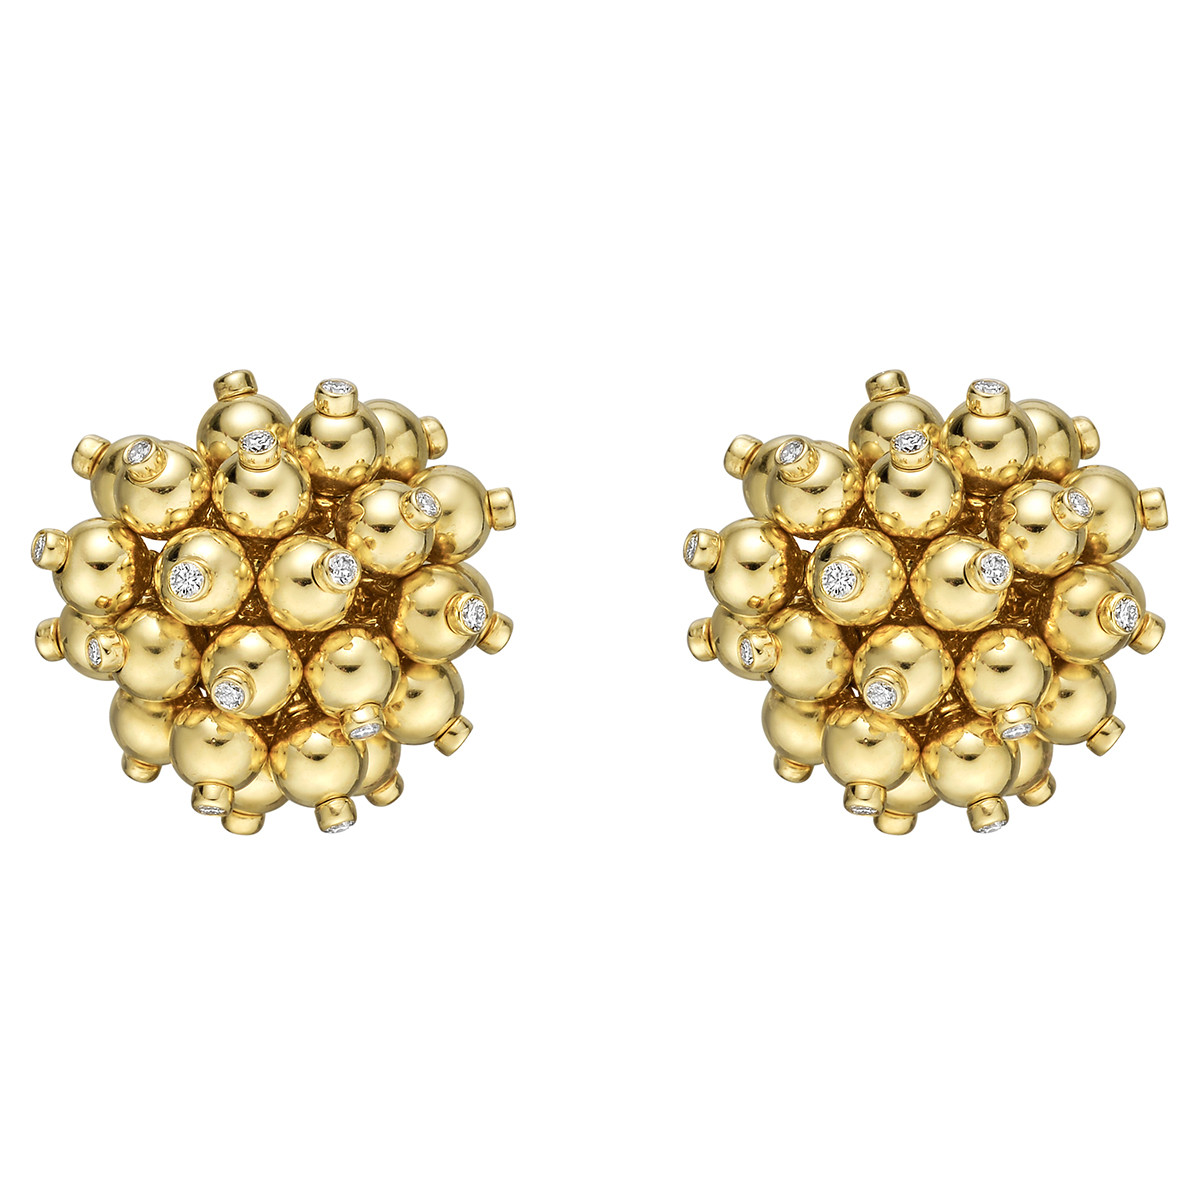 18k Yellow Gold & Diamond 'Sputnik' Earrings